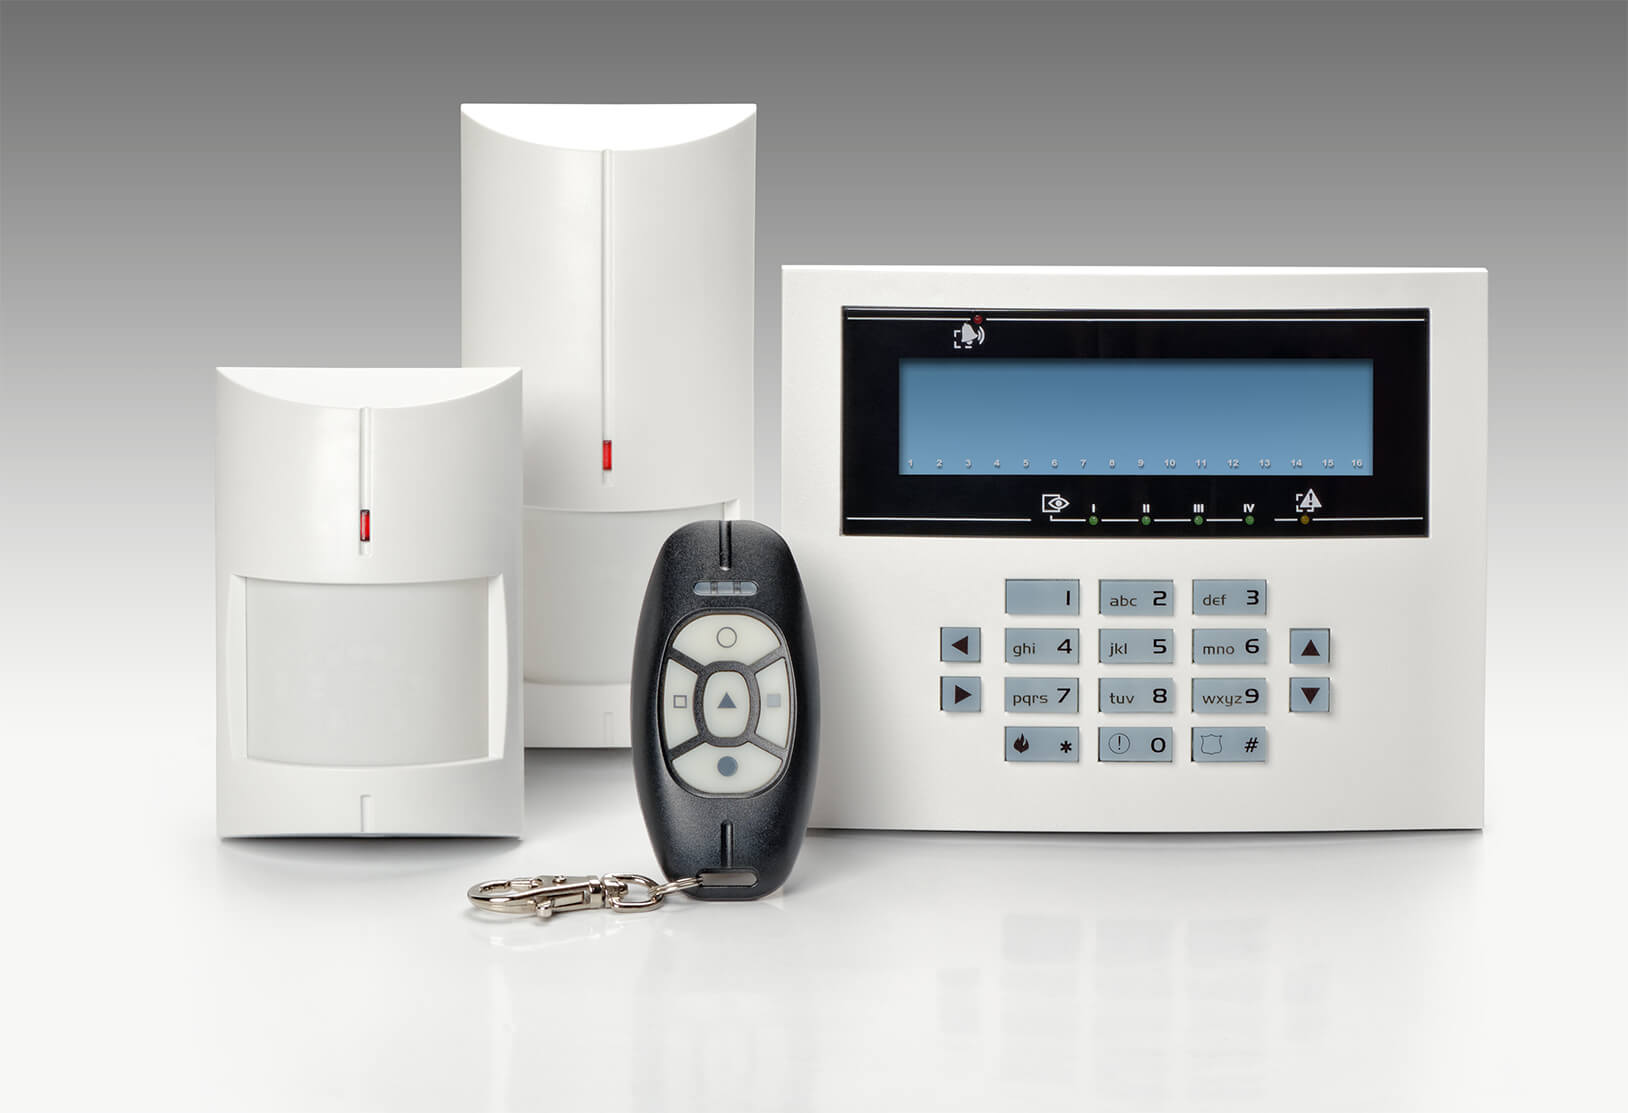 commercial NACOSS Approved {alarms} In Highams Park E4 - Local Highams Park E4 security company.Call 02078872244 - Dedicated to Safety & Security.Trusted by 1000's in Highams Park E4